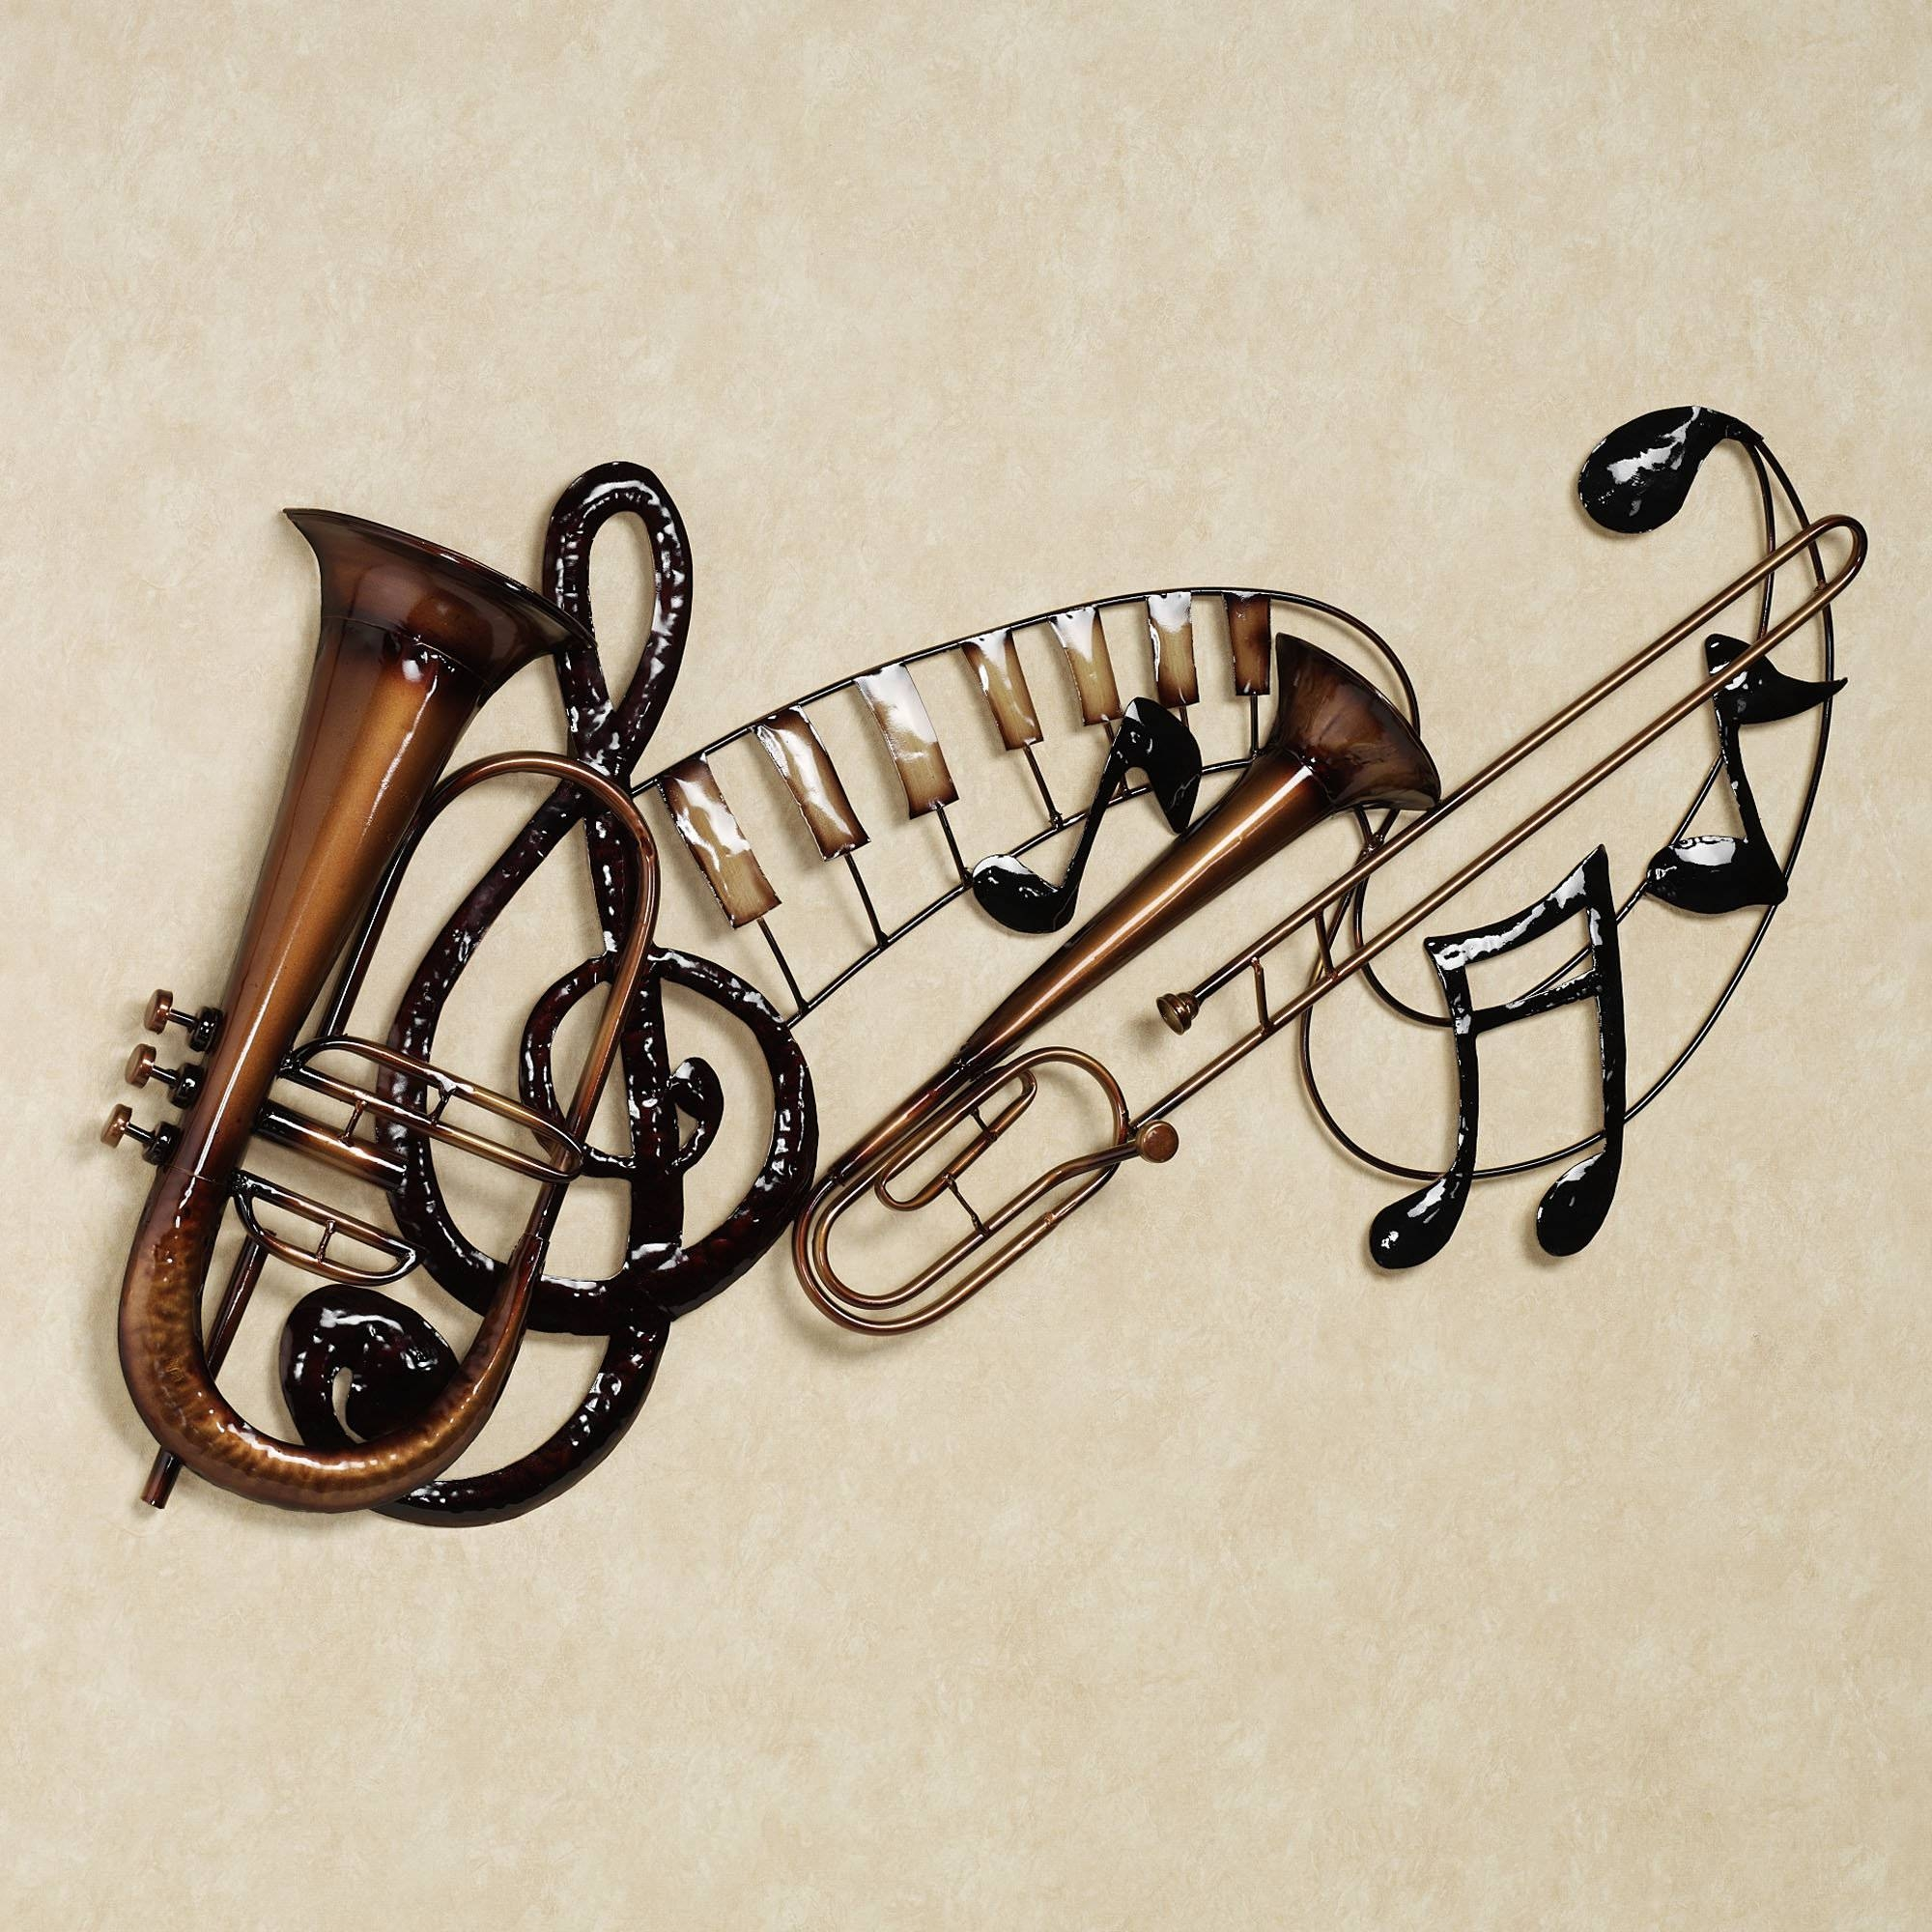 Wall Art Design Ideas: Interlude Unique Metal Wall Art Music In Most Current Music Theme Wall Art (View 20 of 30)